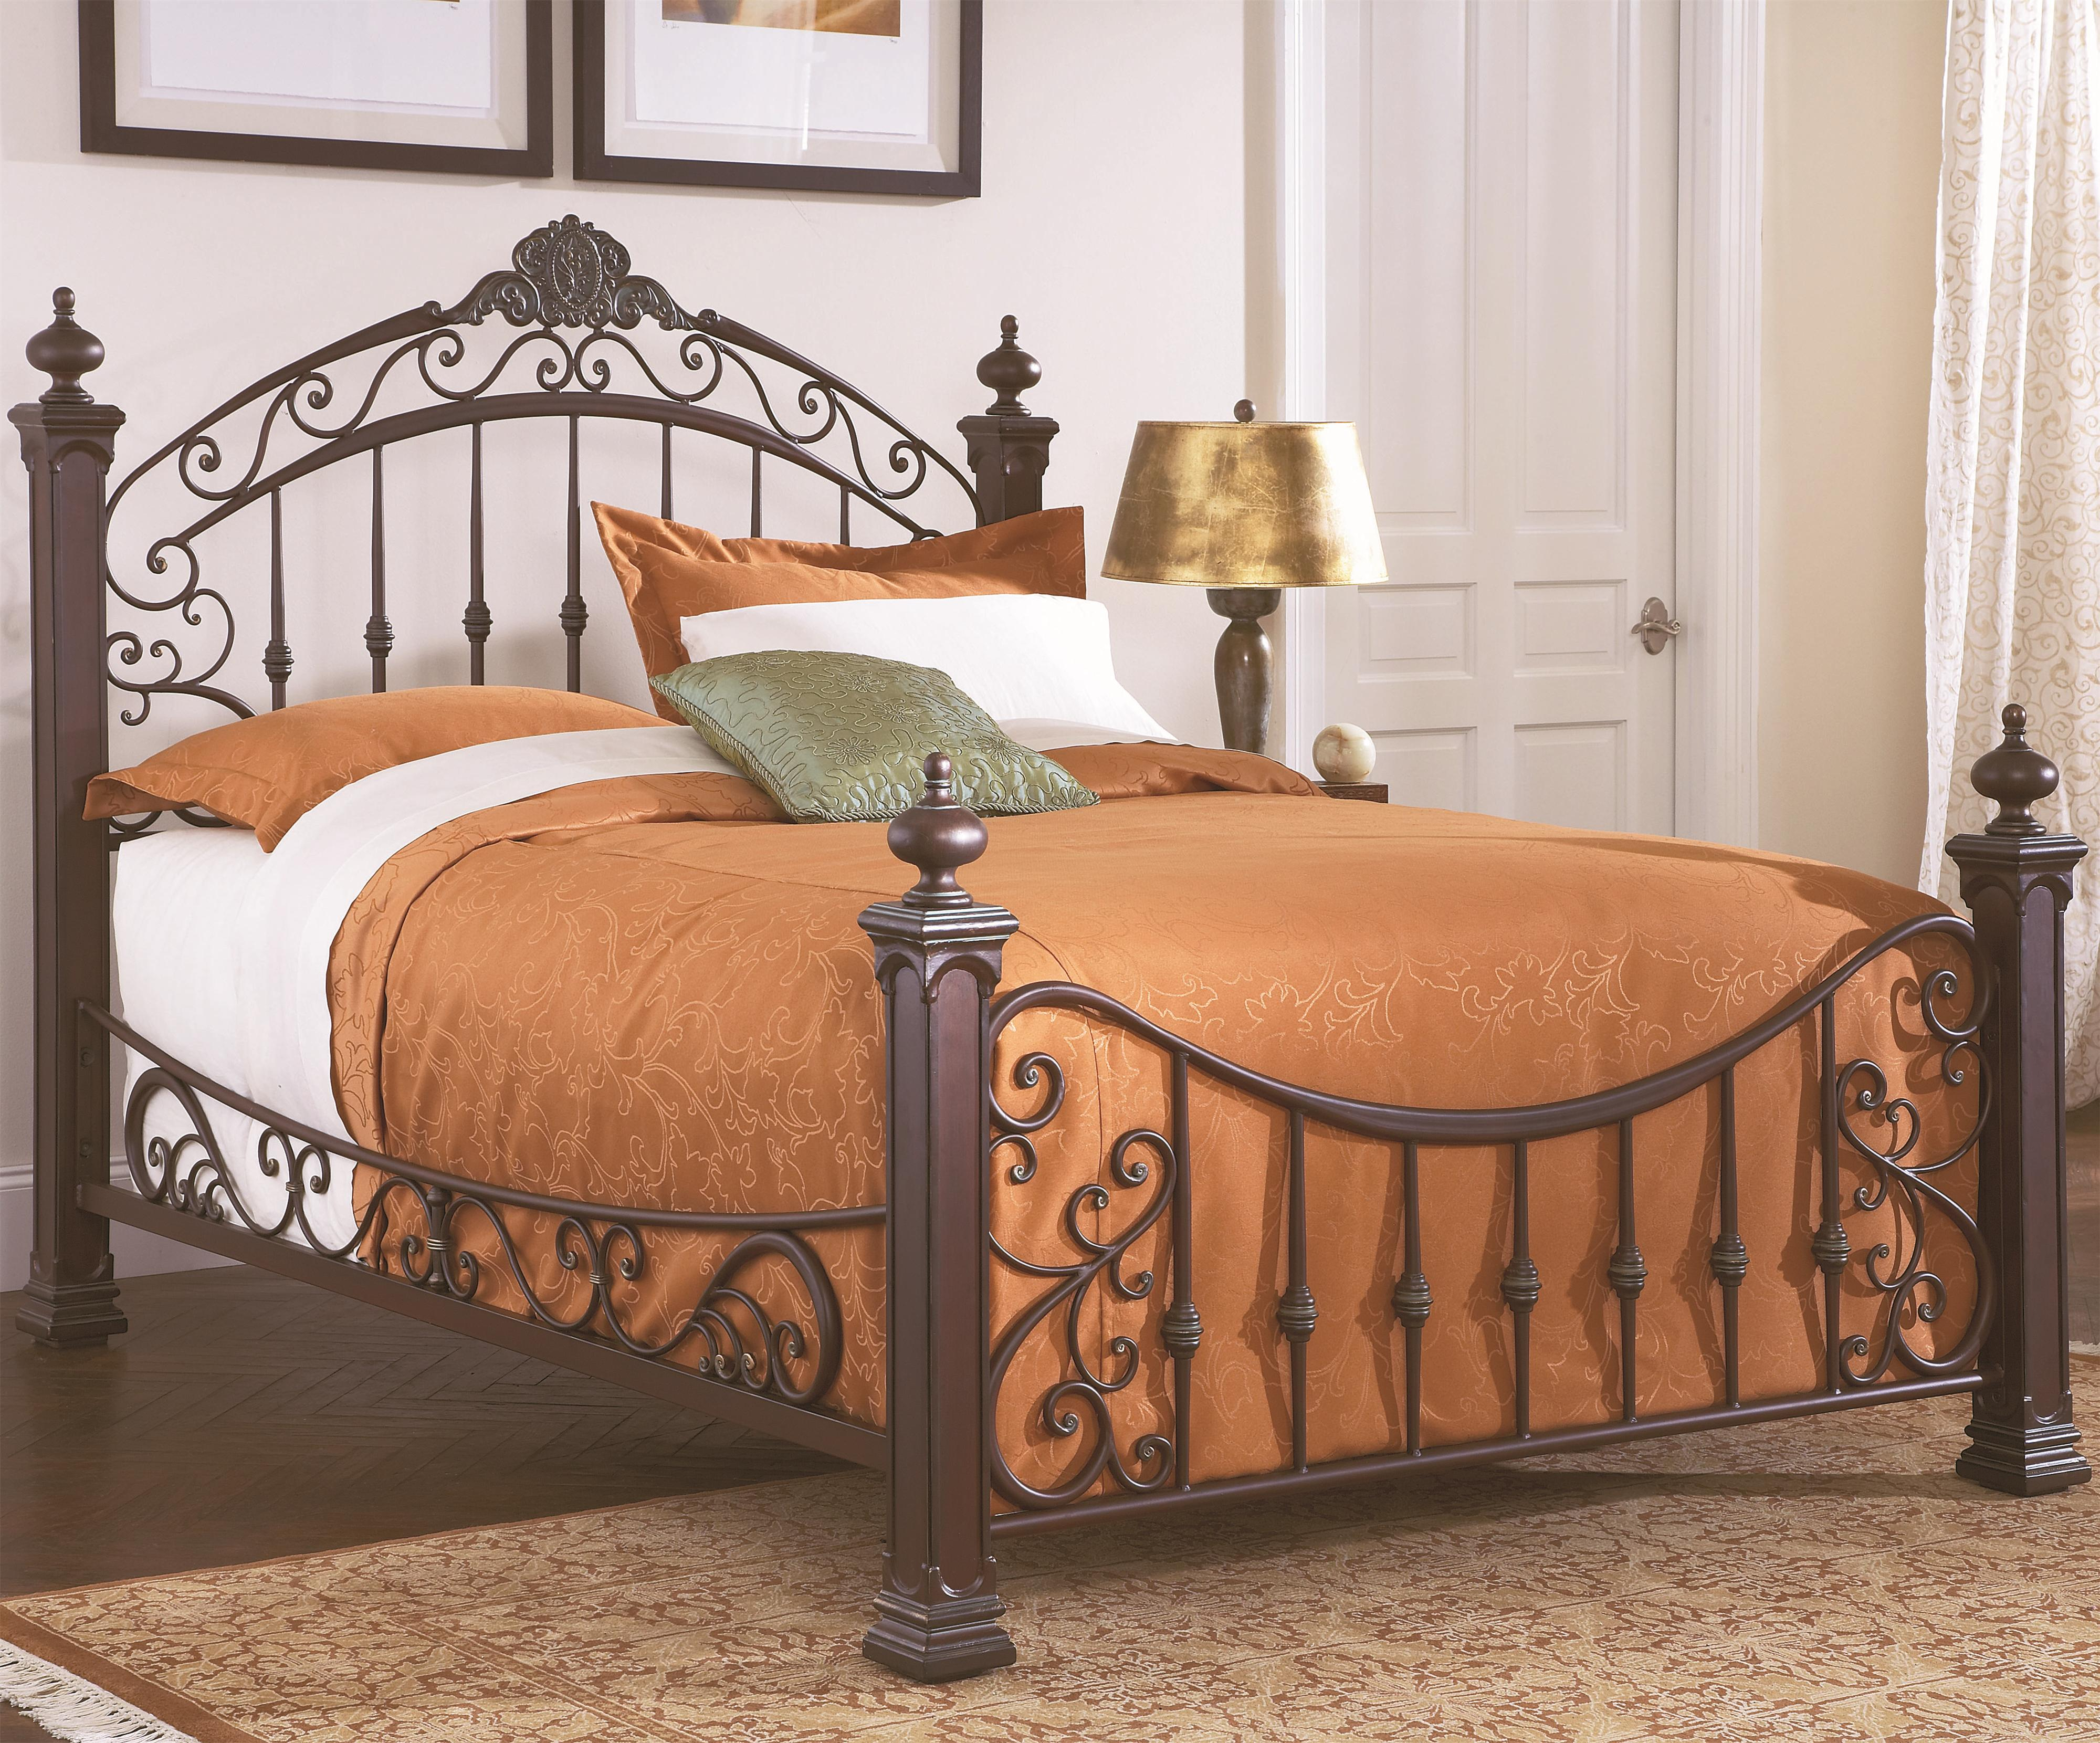 Largo Bedroom Furniture Largo Jackson King Jackson Bed Great American Home Store